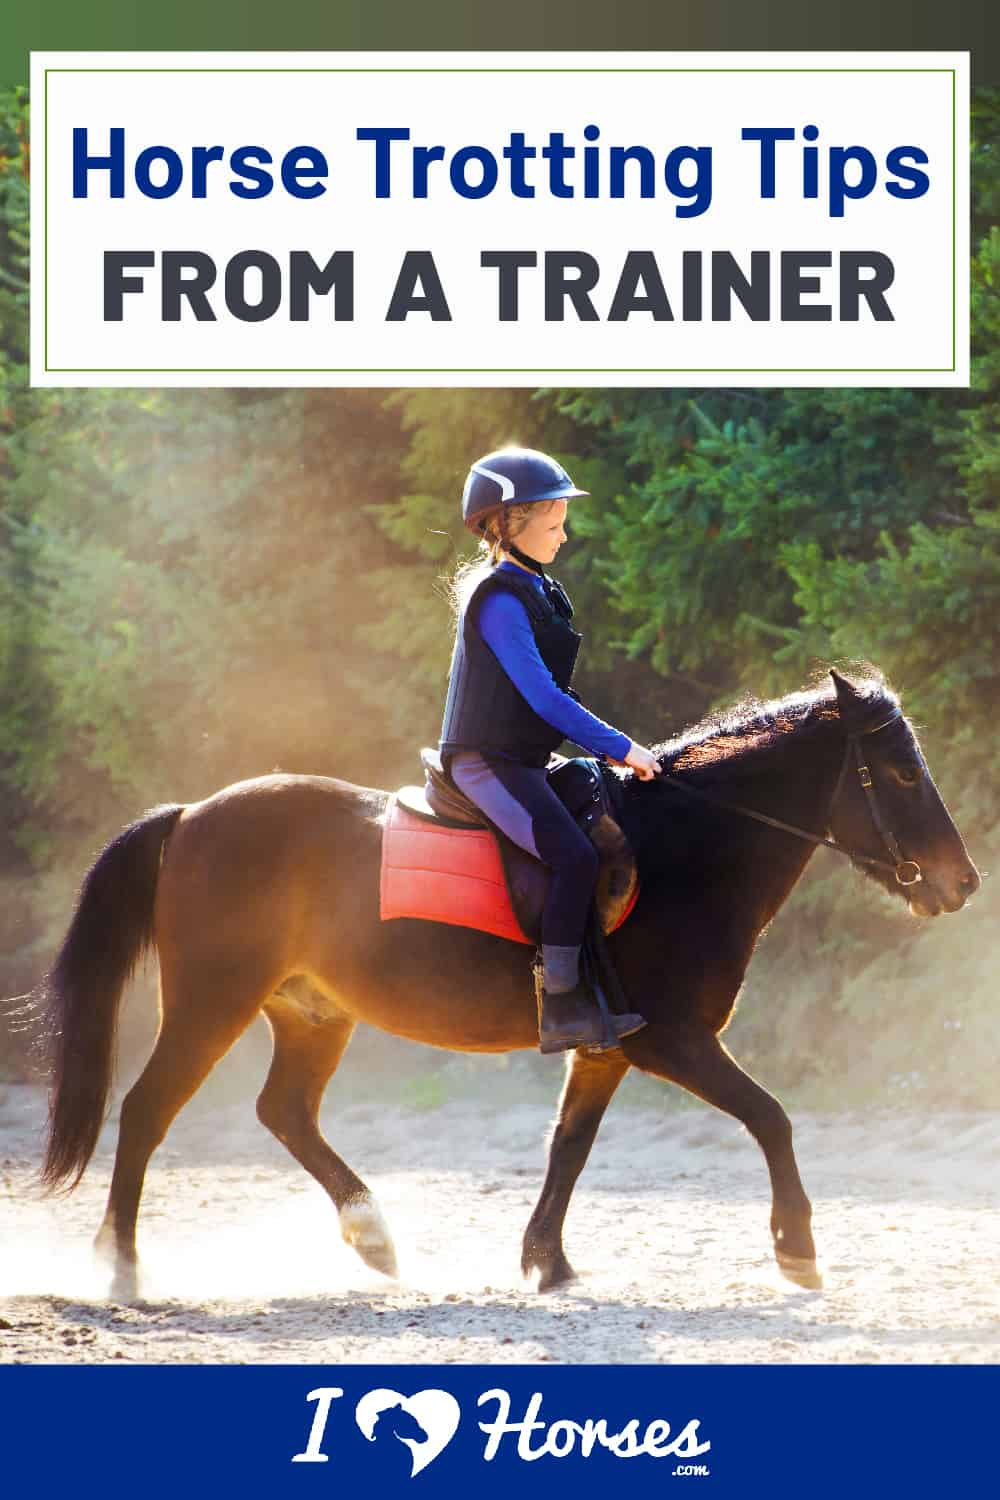 Horse Trotting Tips From A Trainer